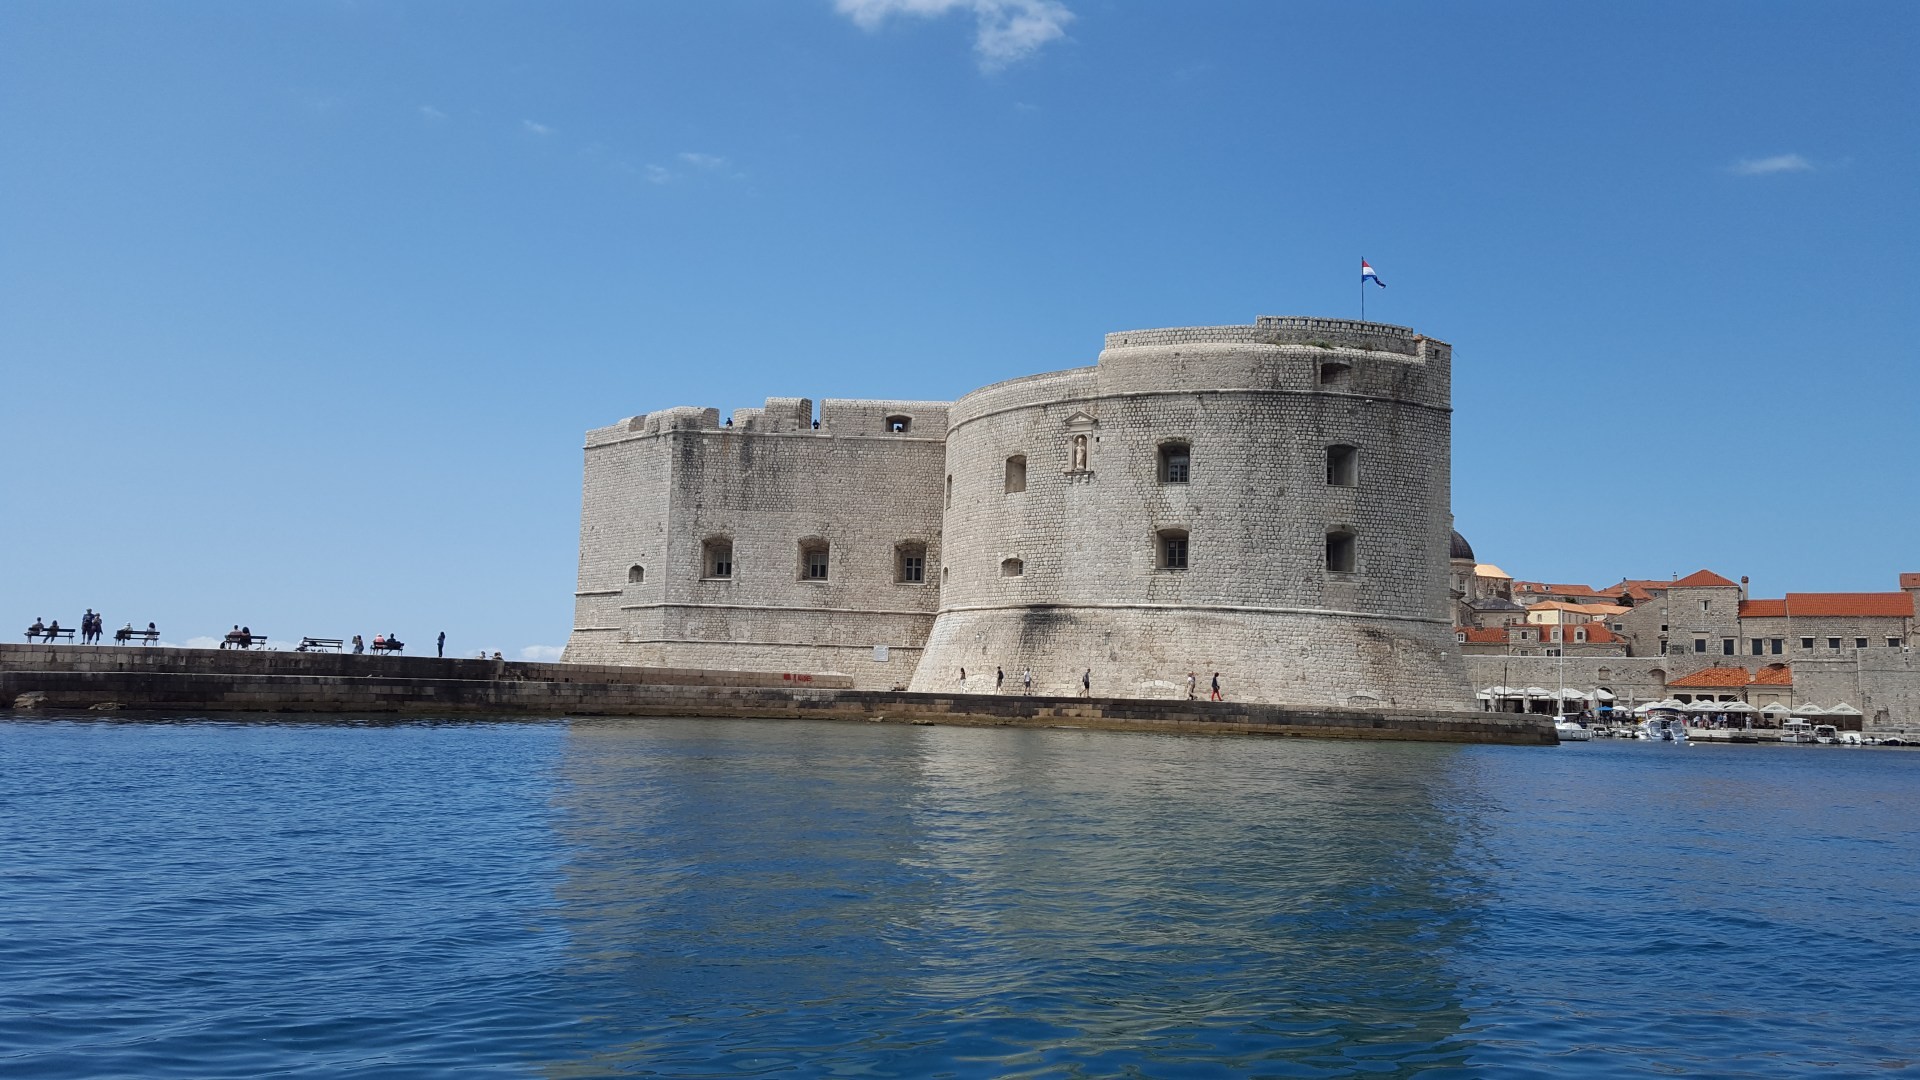 Dubrovnik Day 2 | The walls, Lokrum island and Game of Thrones